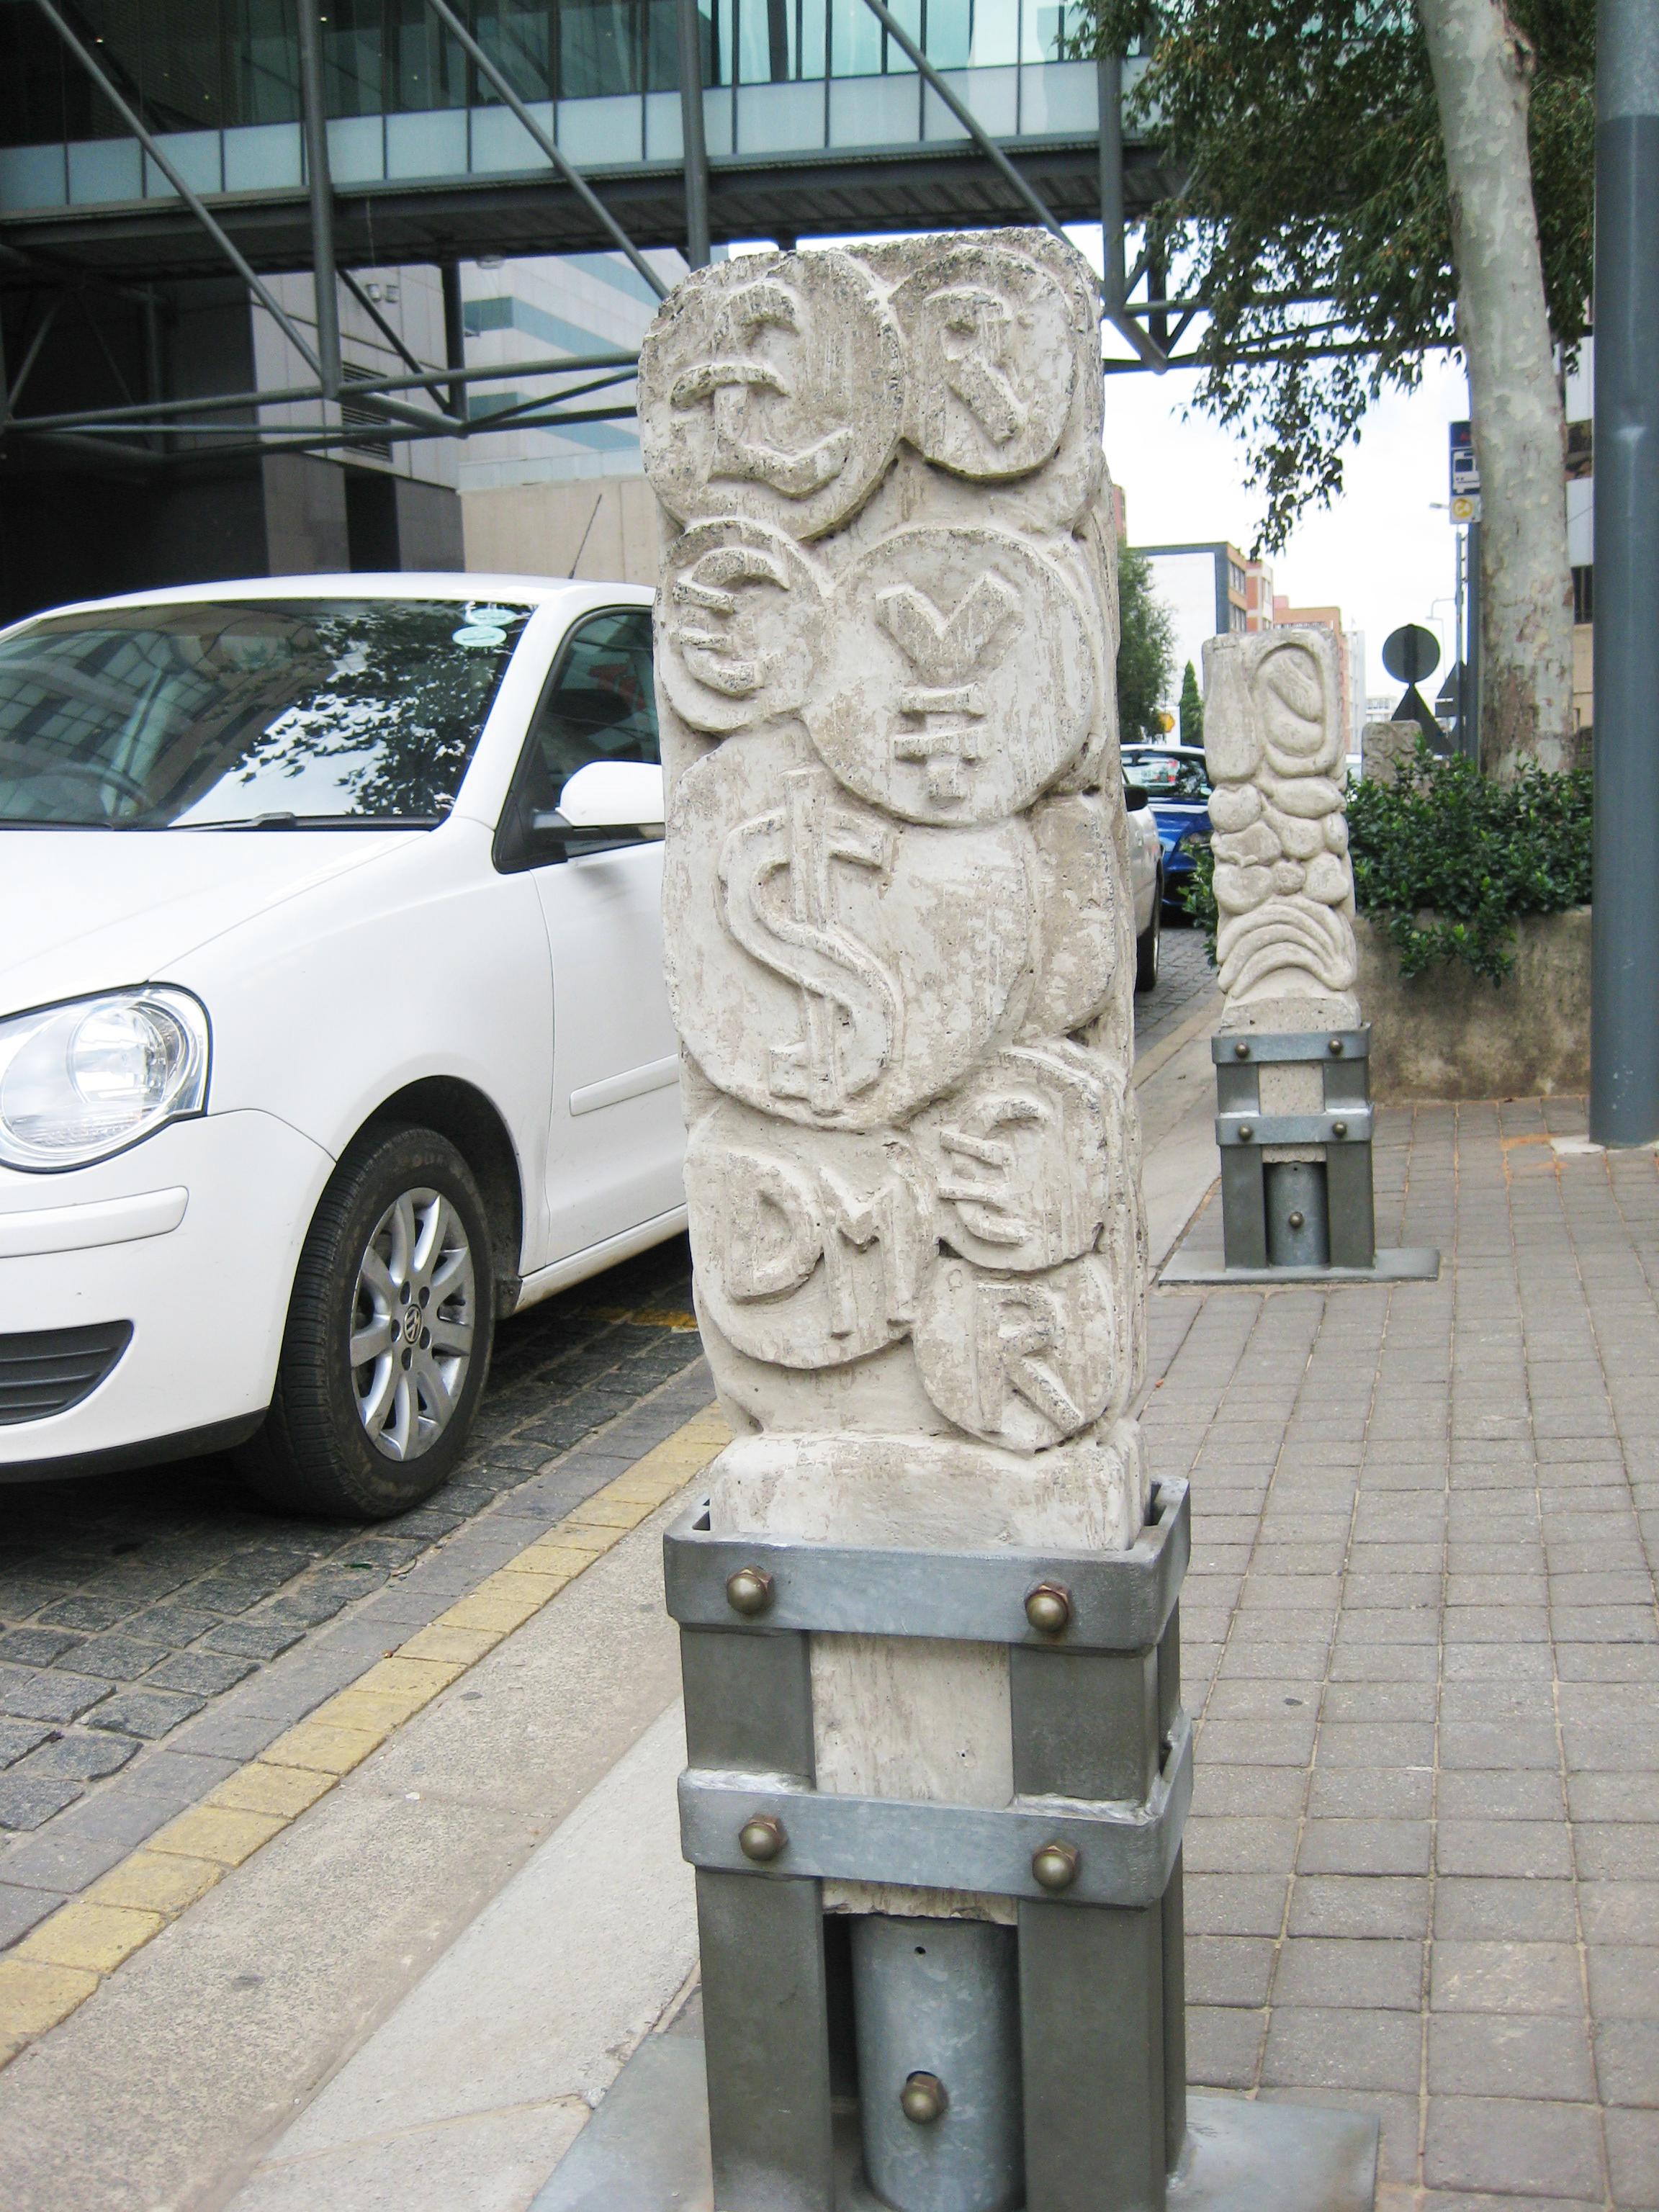 Decorated bollards in the banking district